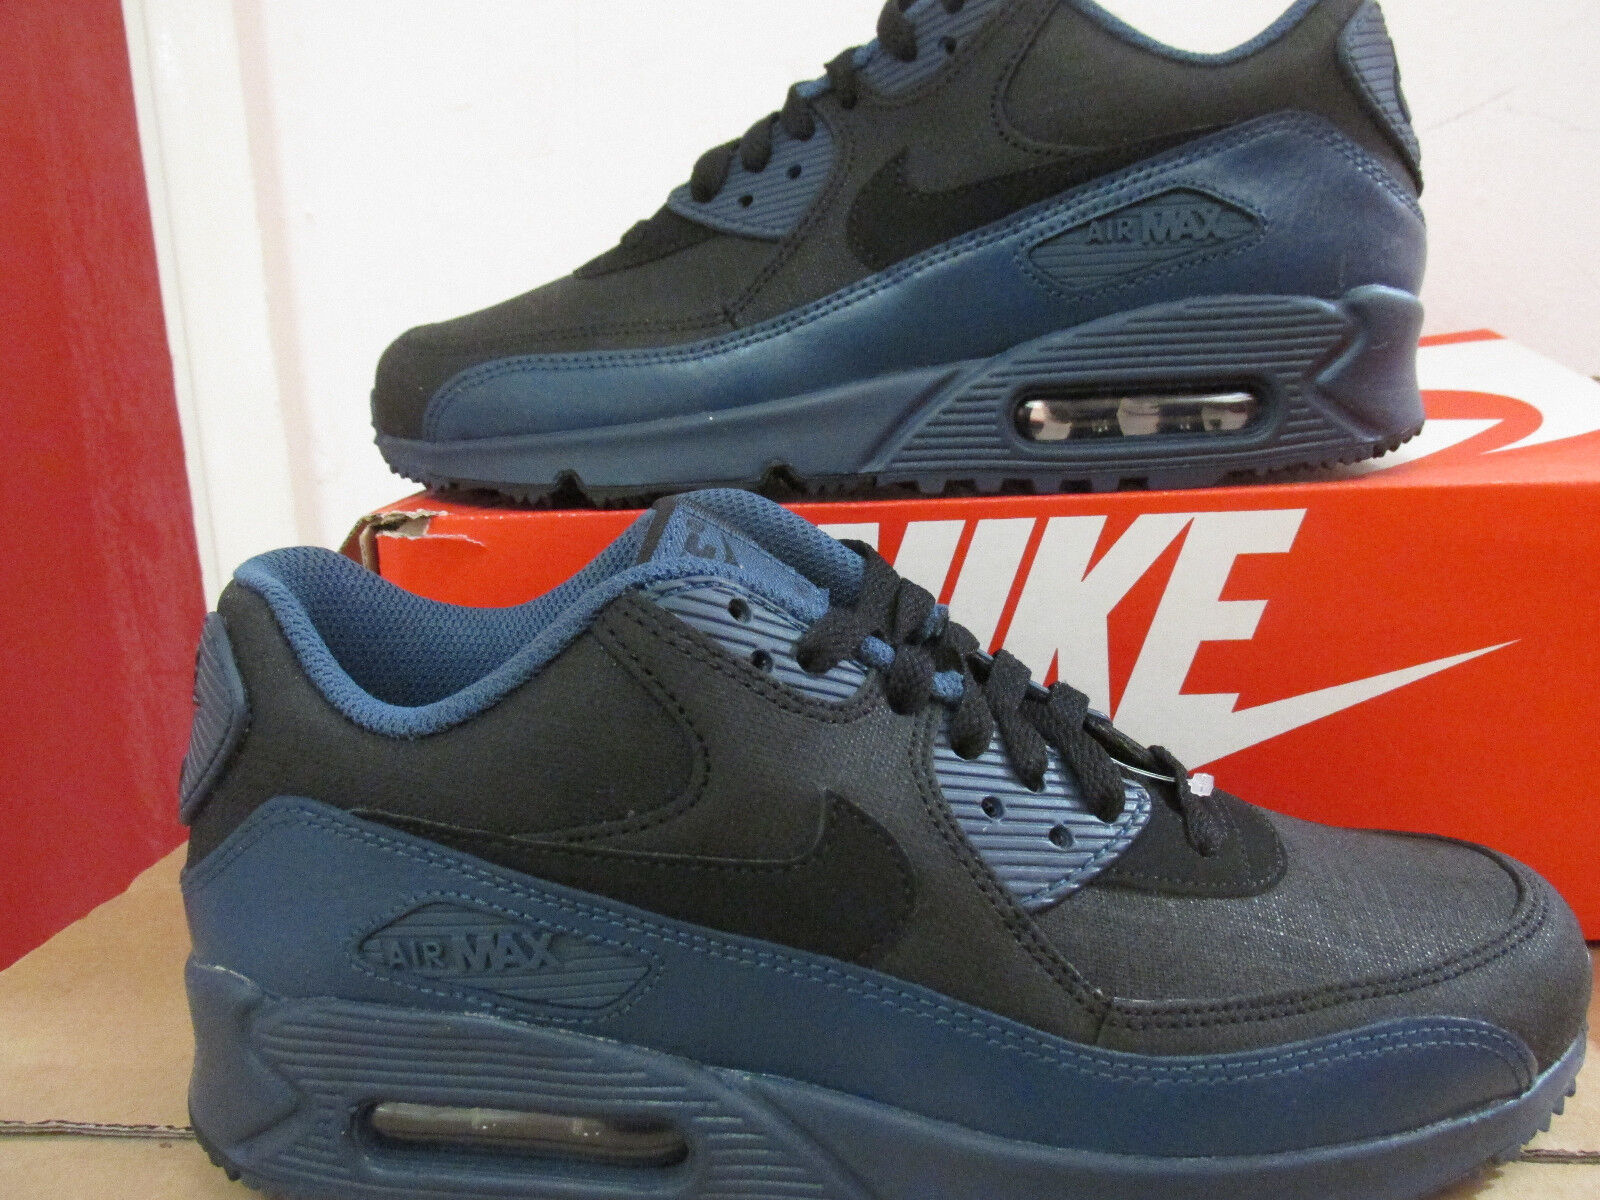 nike air max 90 winter PRM homme  trainers 683282 404 sneakers  chaussures  CLEARANCE